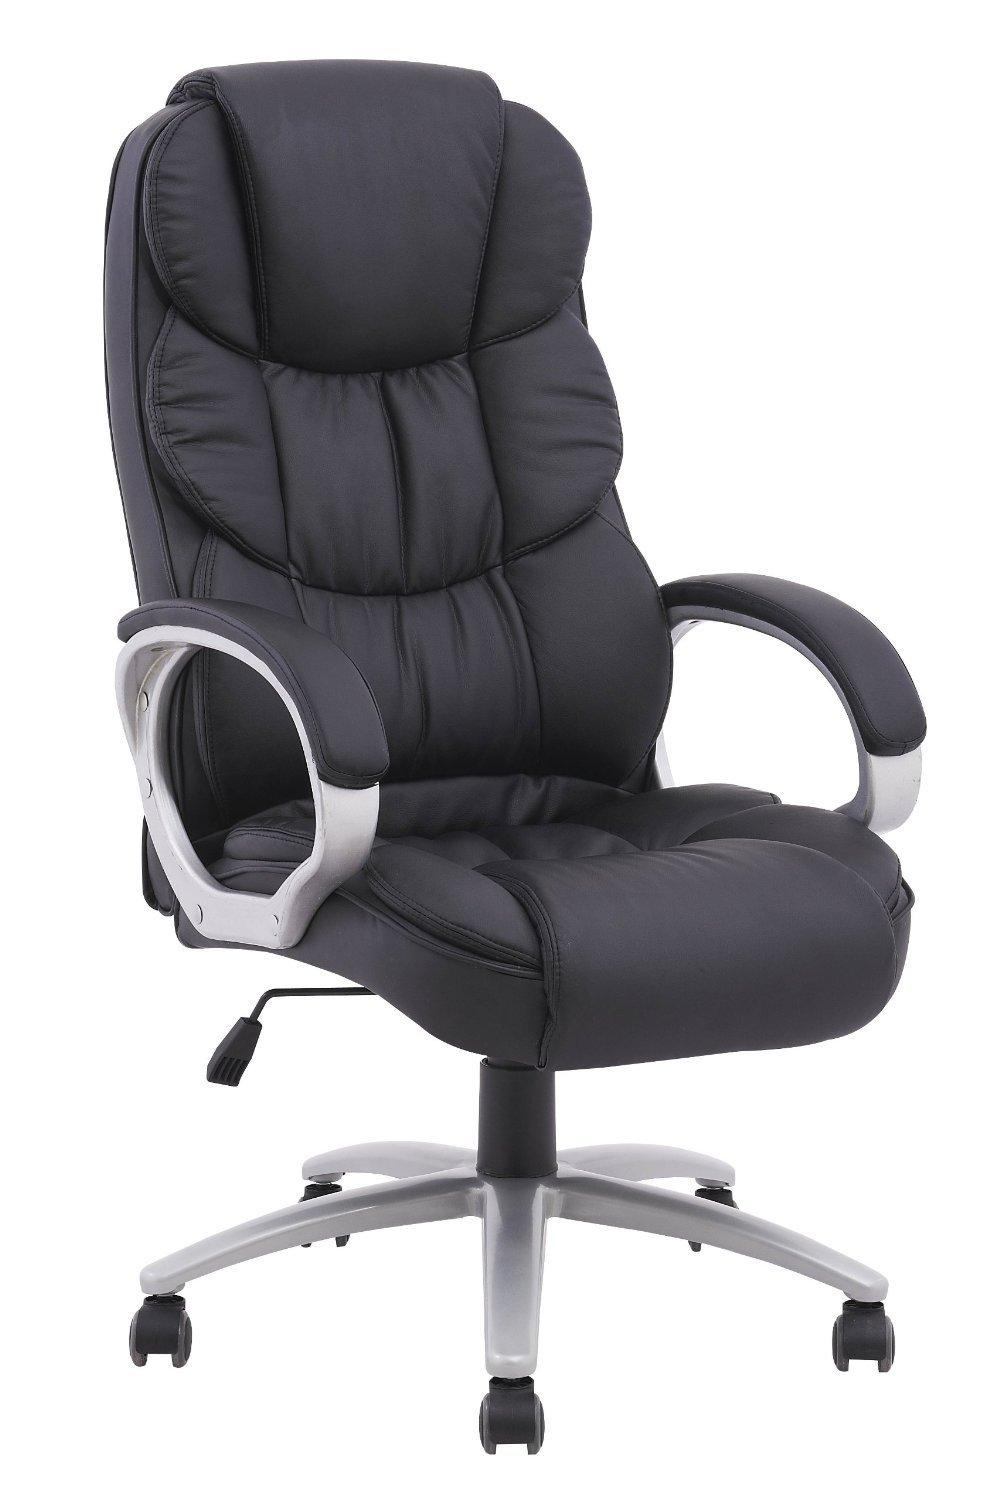 ▻ Chairs : 5 Great Computer Chairs Great Office Chairs Sofas In Ergonomic Sofas And Chairs (View 5 of 20)